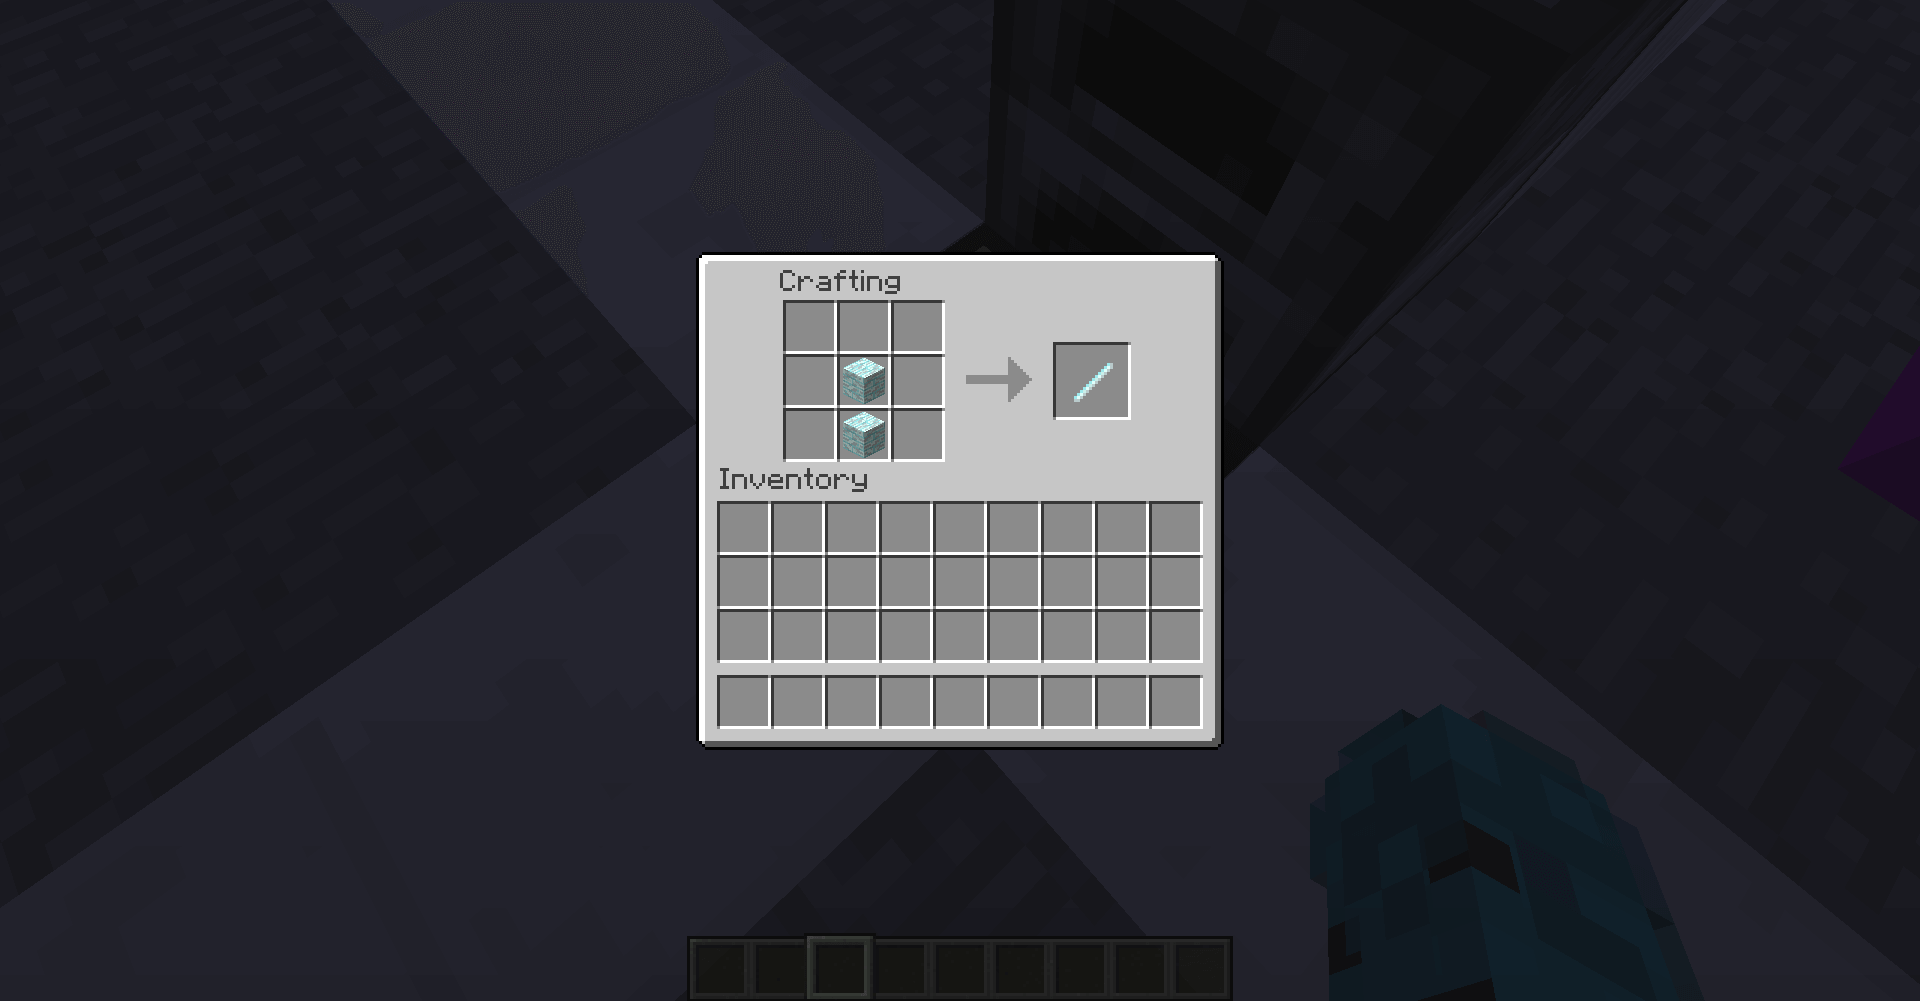 heaven-and-hell-mod-crafting-recipes-2.png